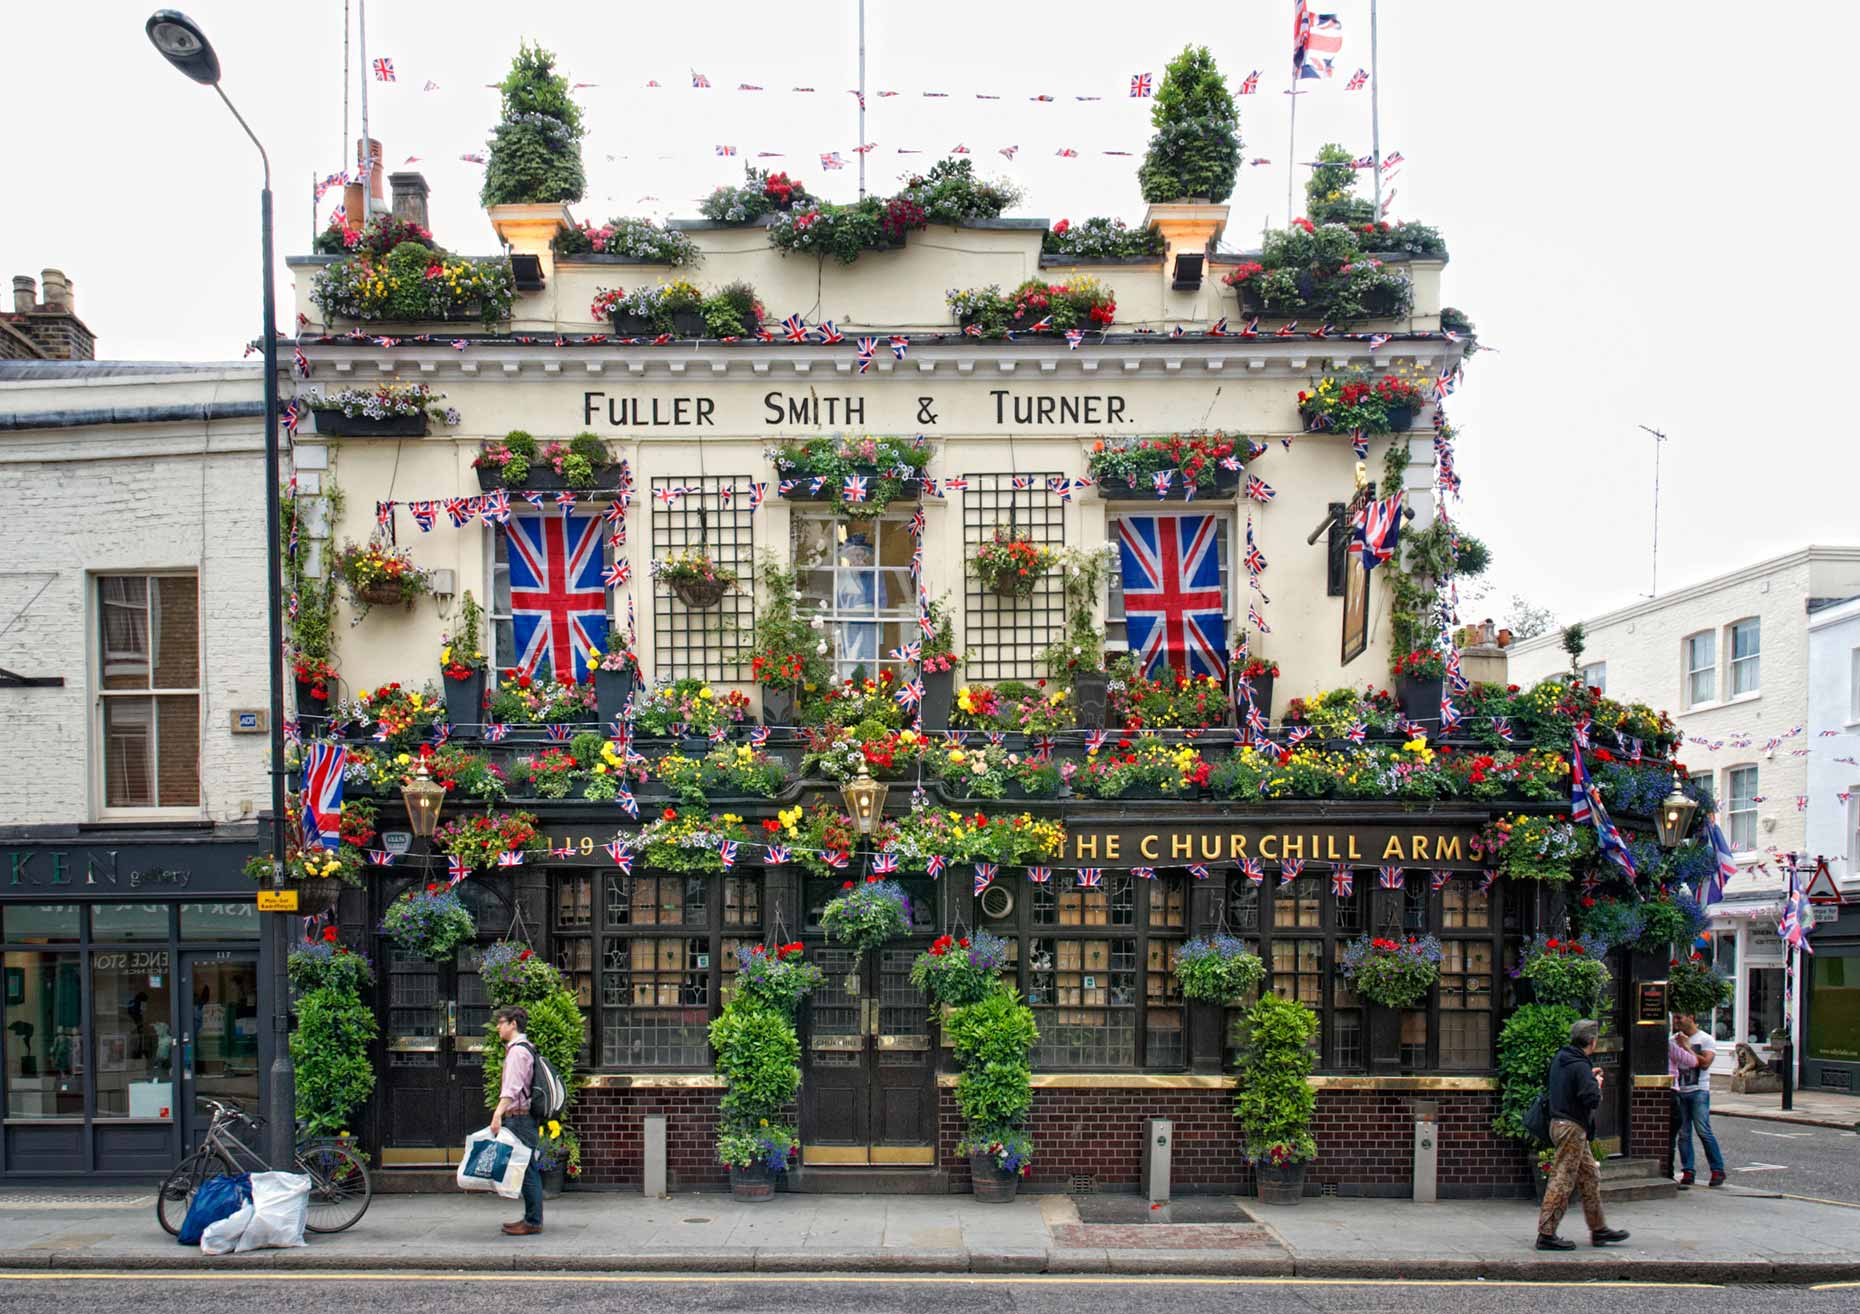 beeldbewerker-london-pub-churchill-arms-tjeerd-kruse-london pub-churchillarms-beeldbewerking-vrij-werk